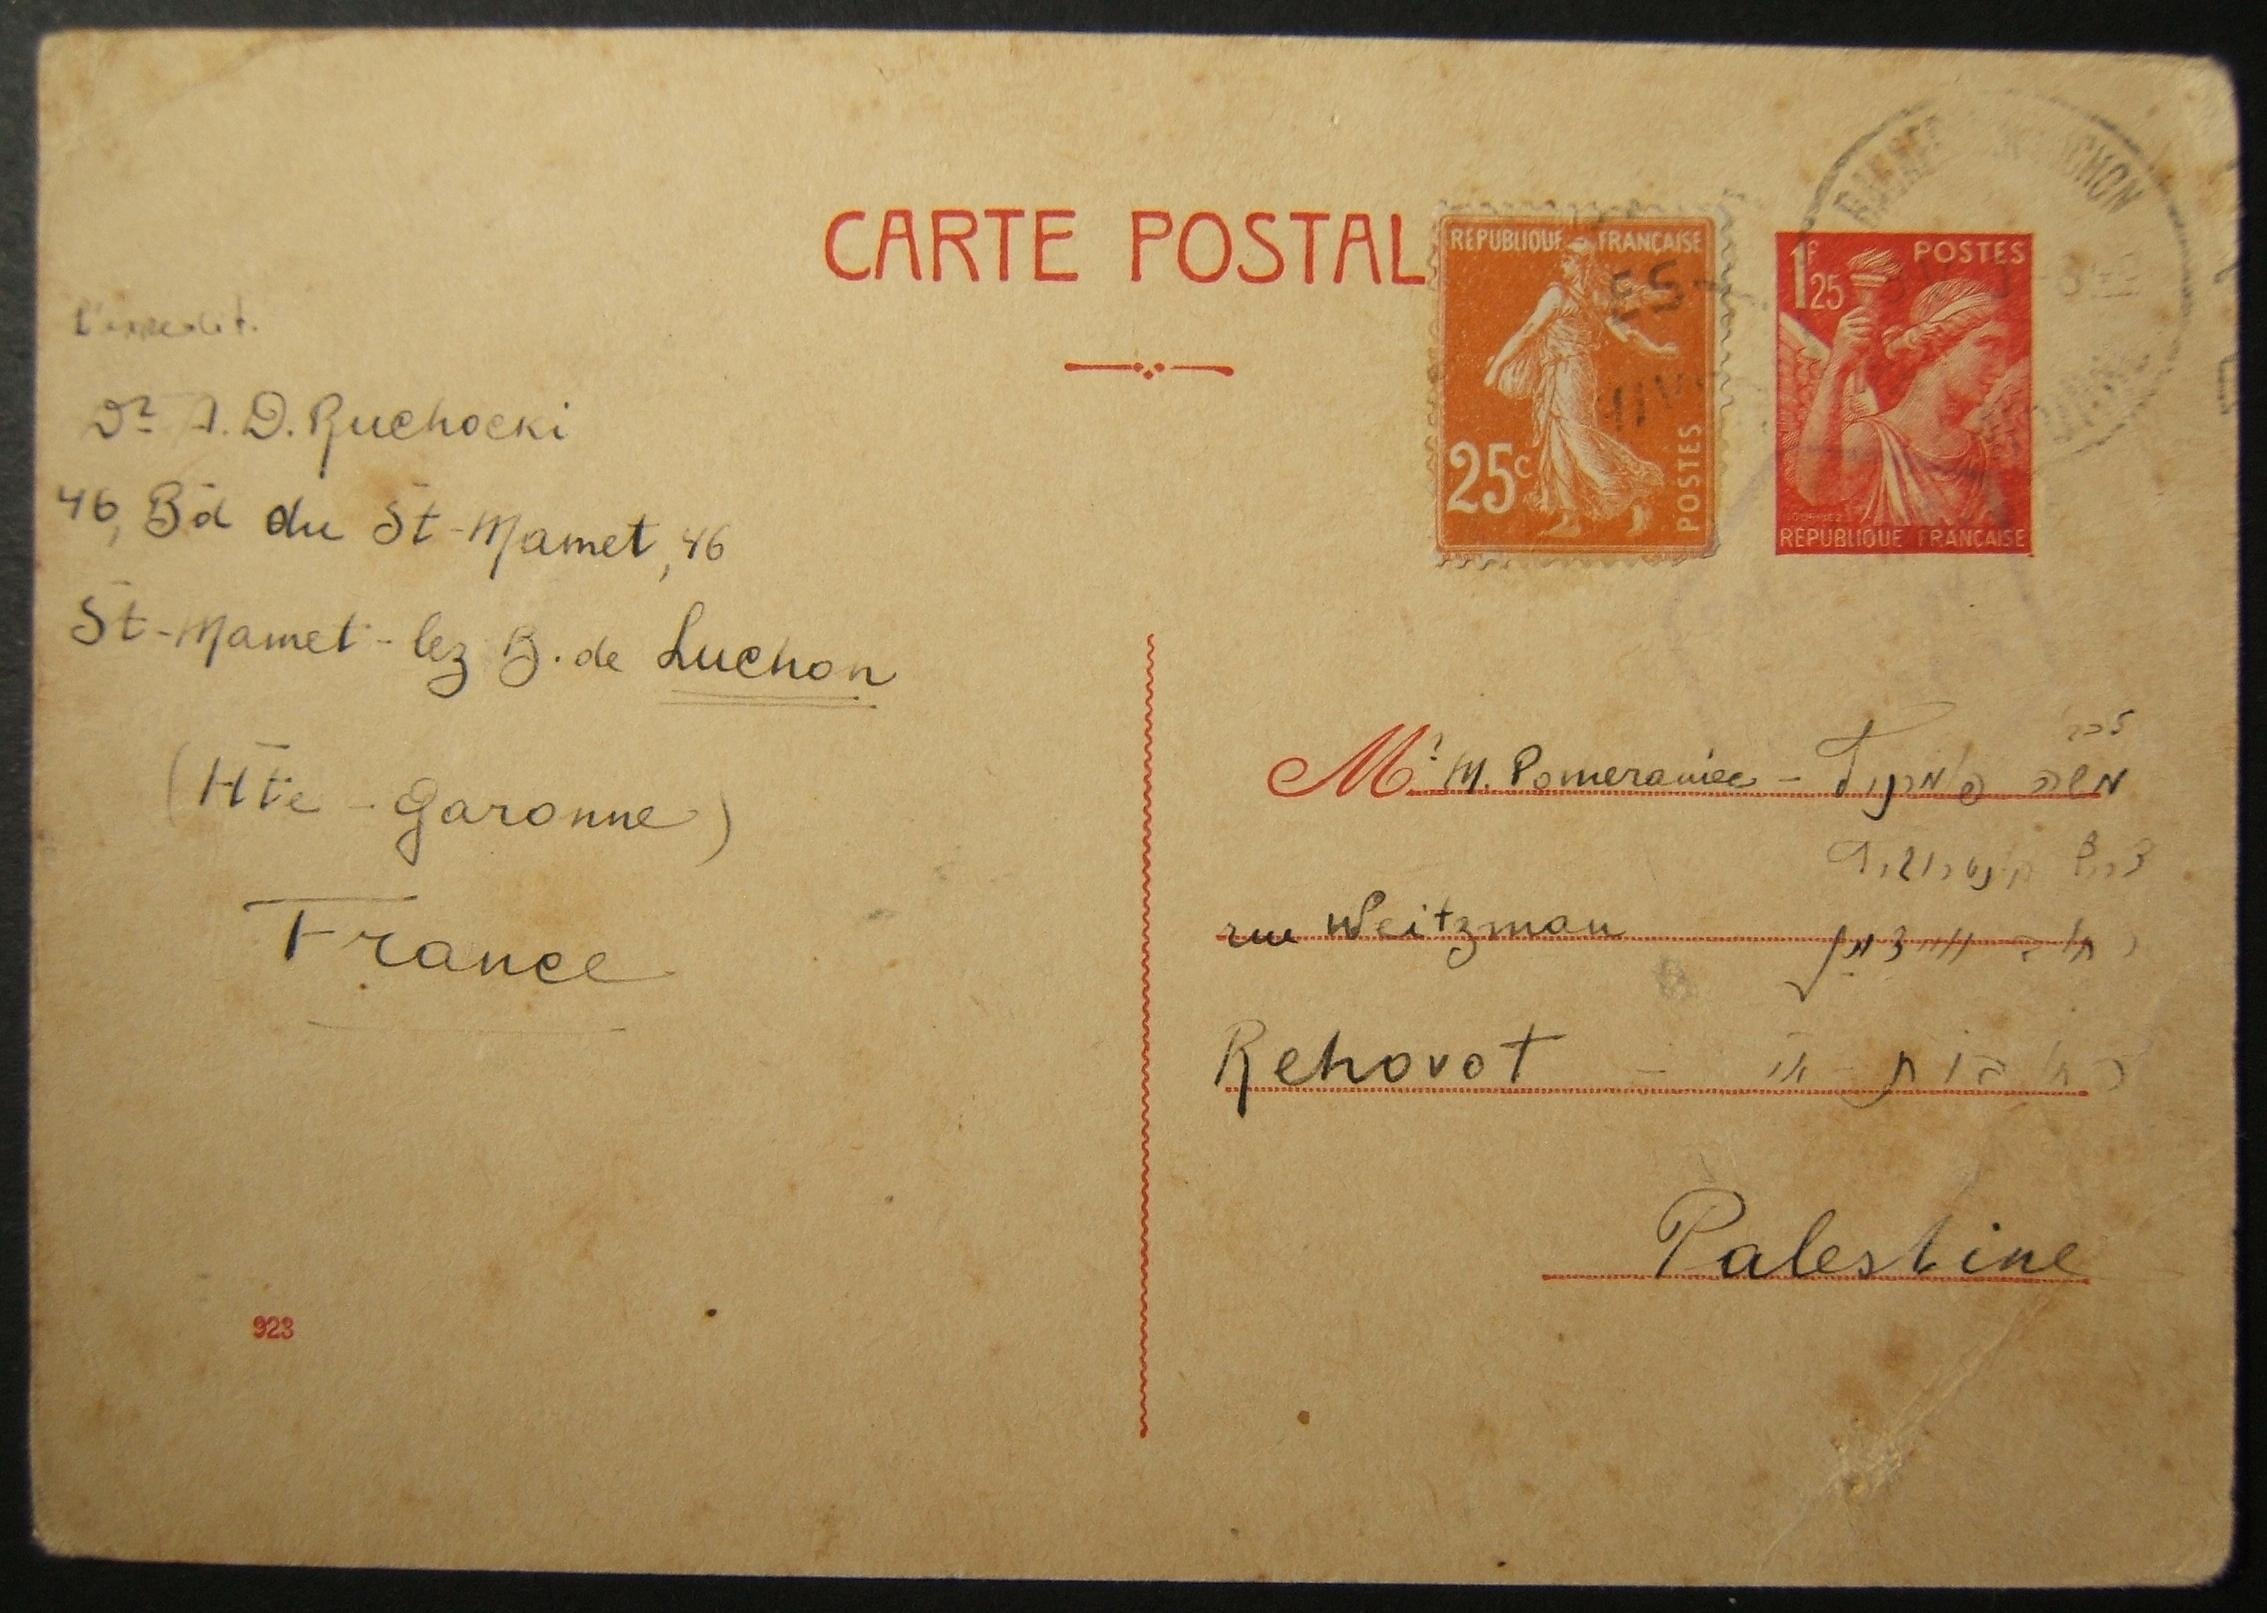 WWII / Holocaust era / Fall of France Yiddish mail from BAGNERES-DE-LUCHON to Palestine